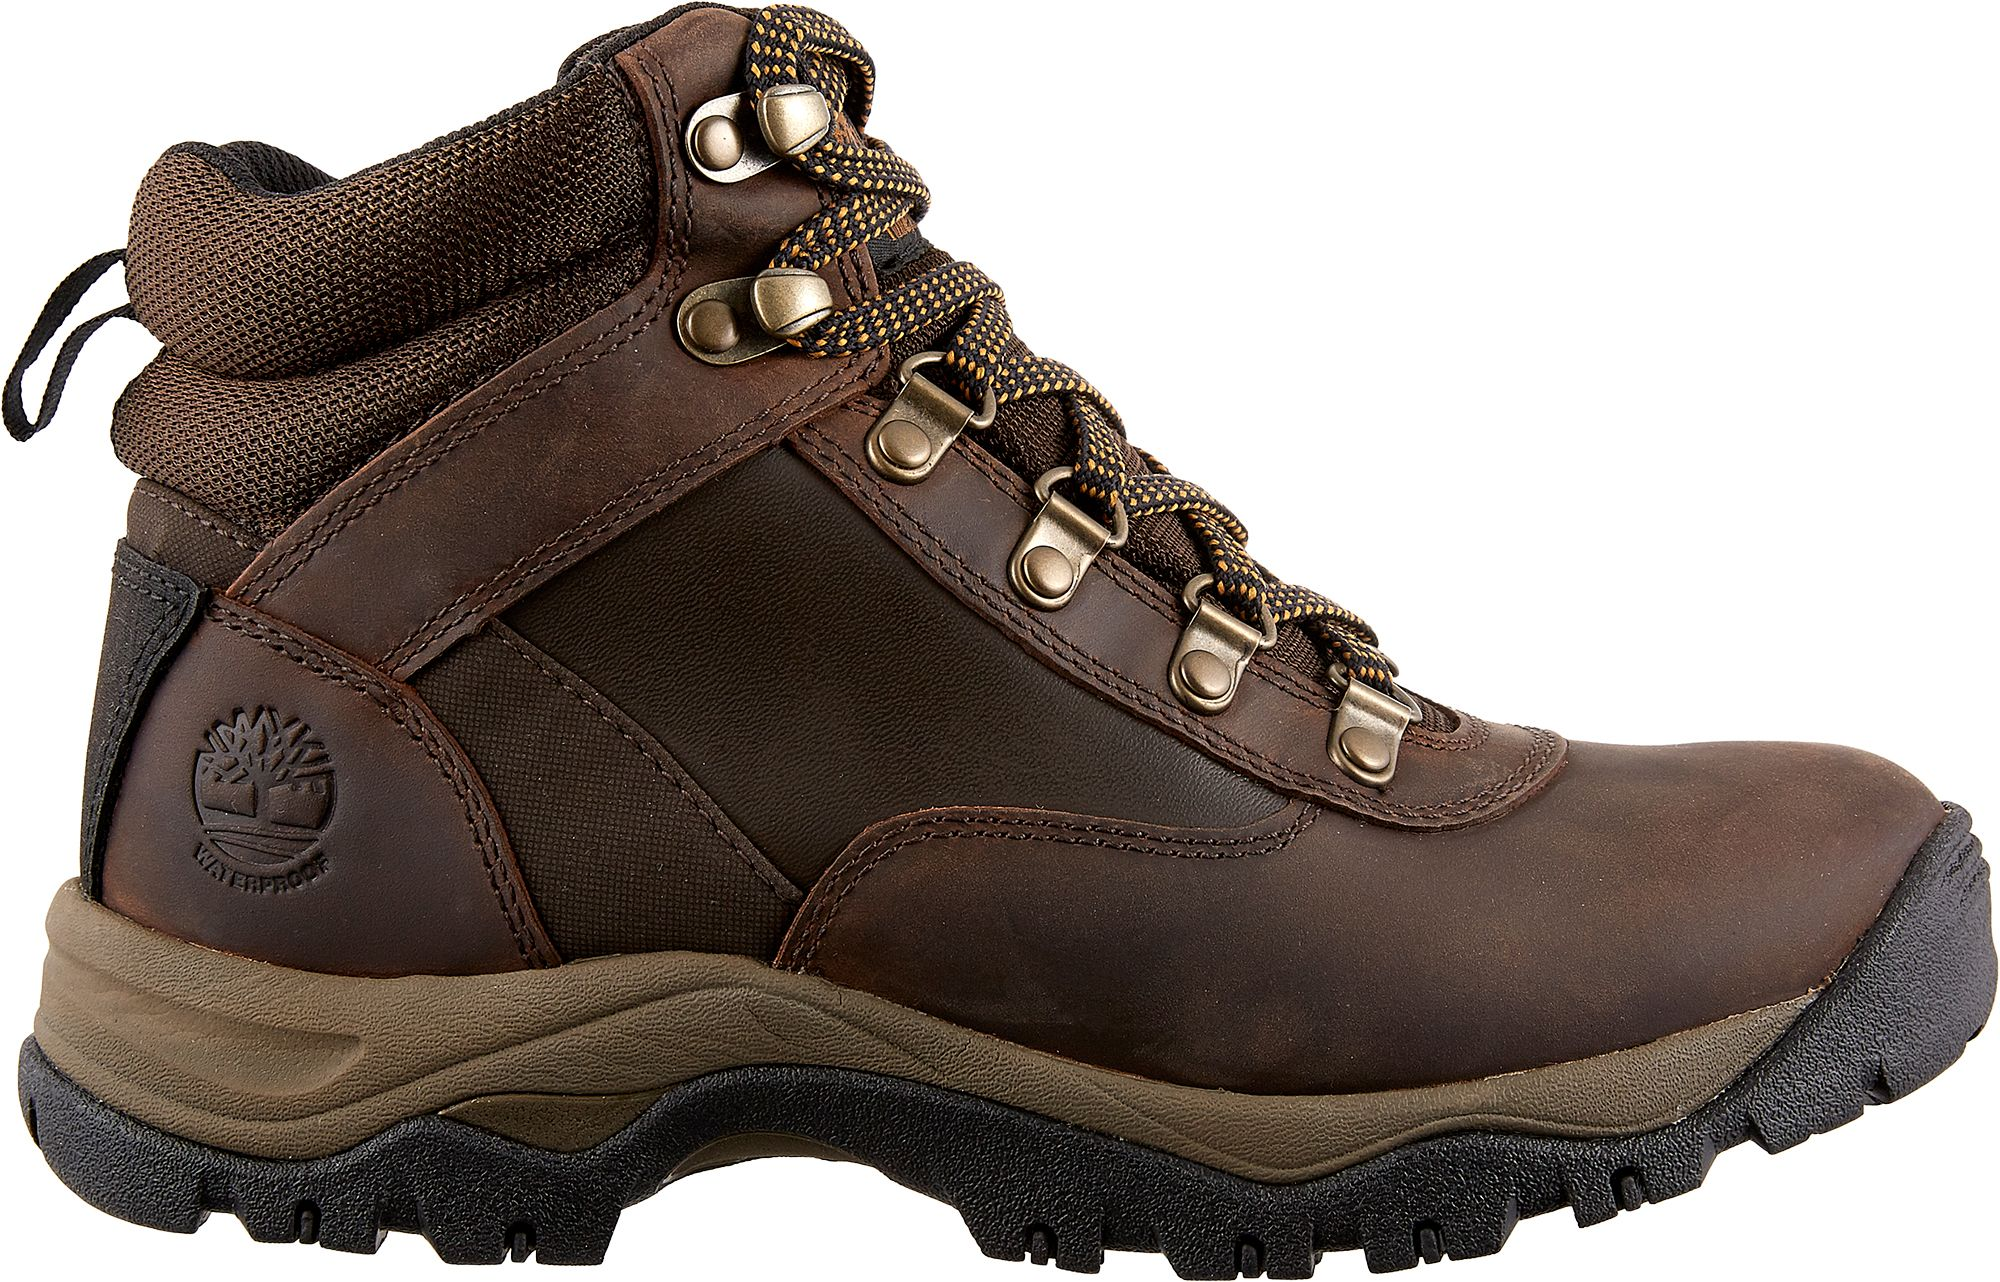 Womens TIMBERLAND Keele Ridge Oiled Waterproof Hiking Boots PEWTER OILED